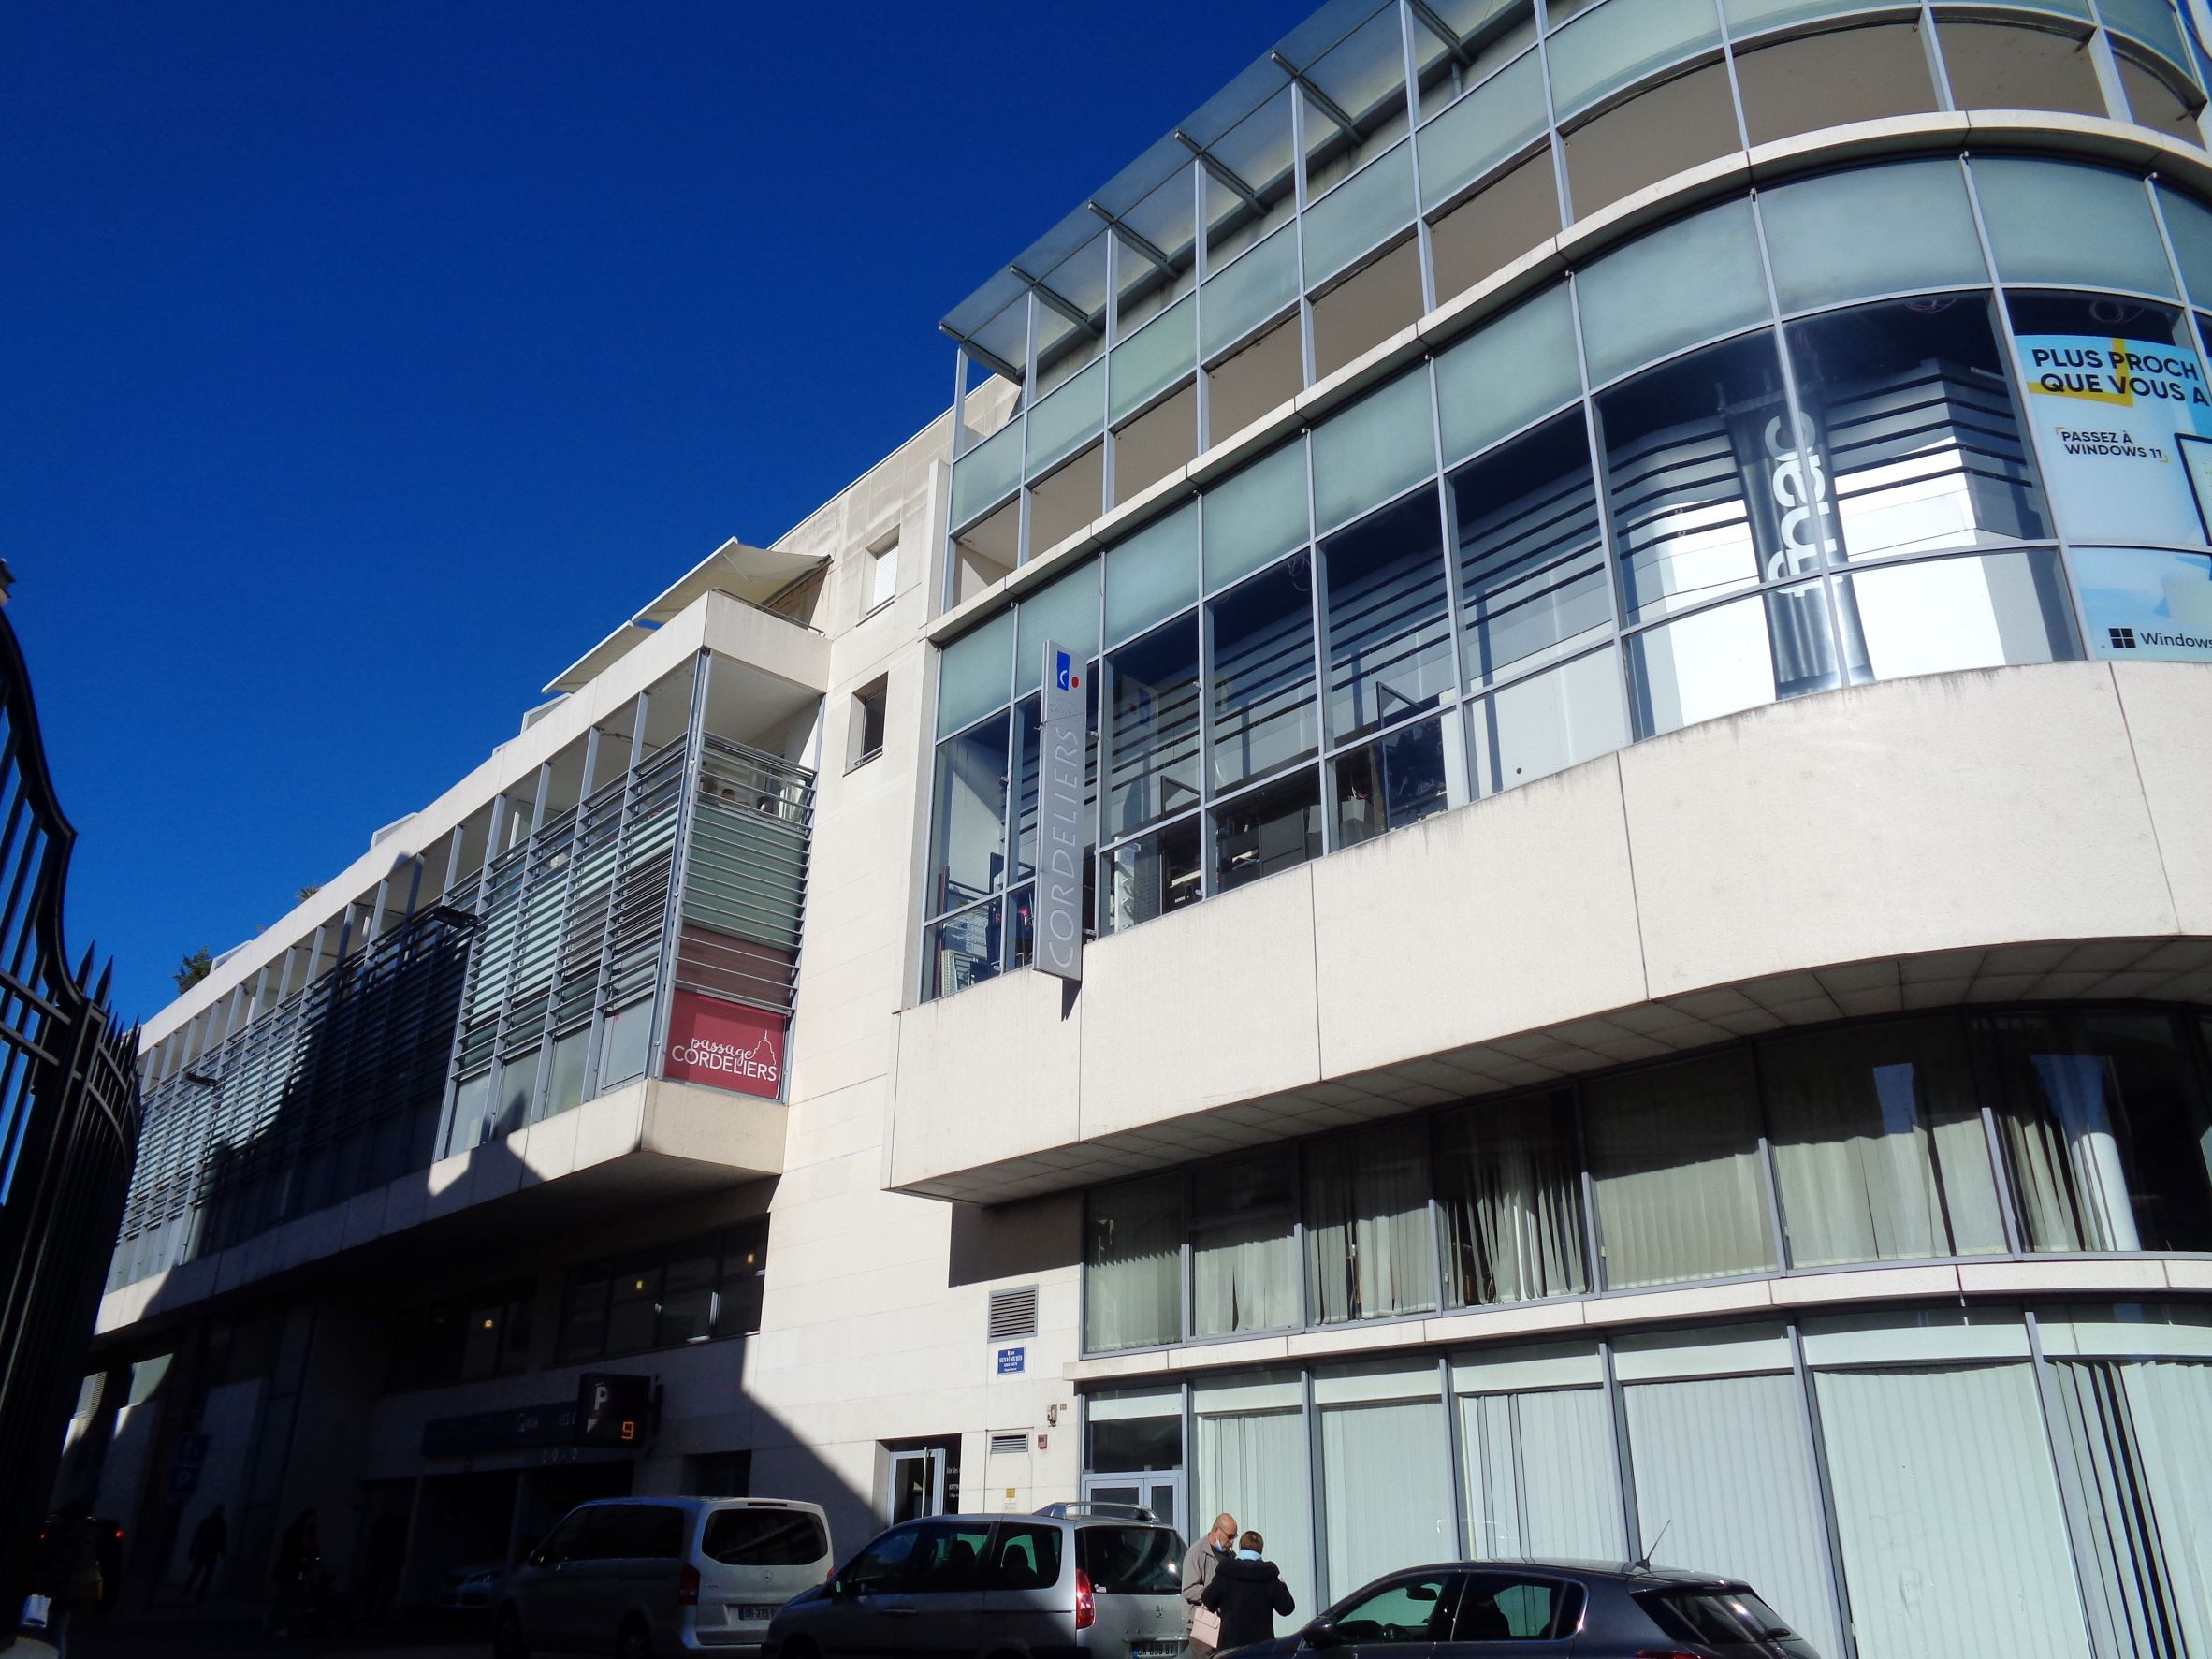 Poitiers centre commercial Cordeliers oct21